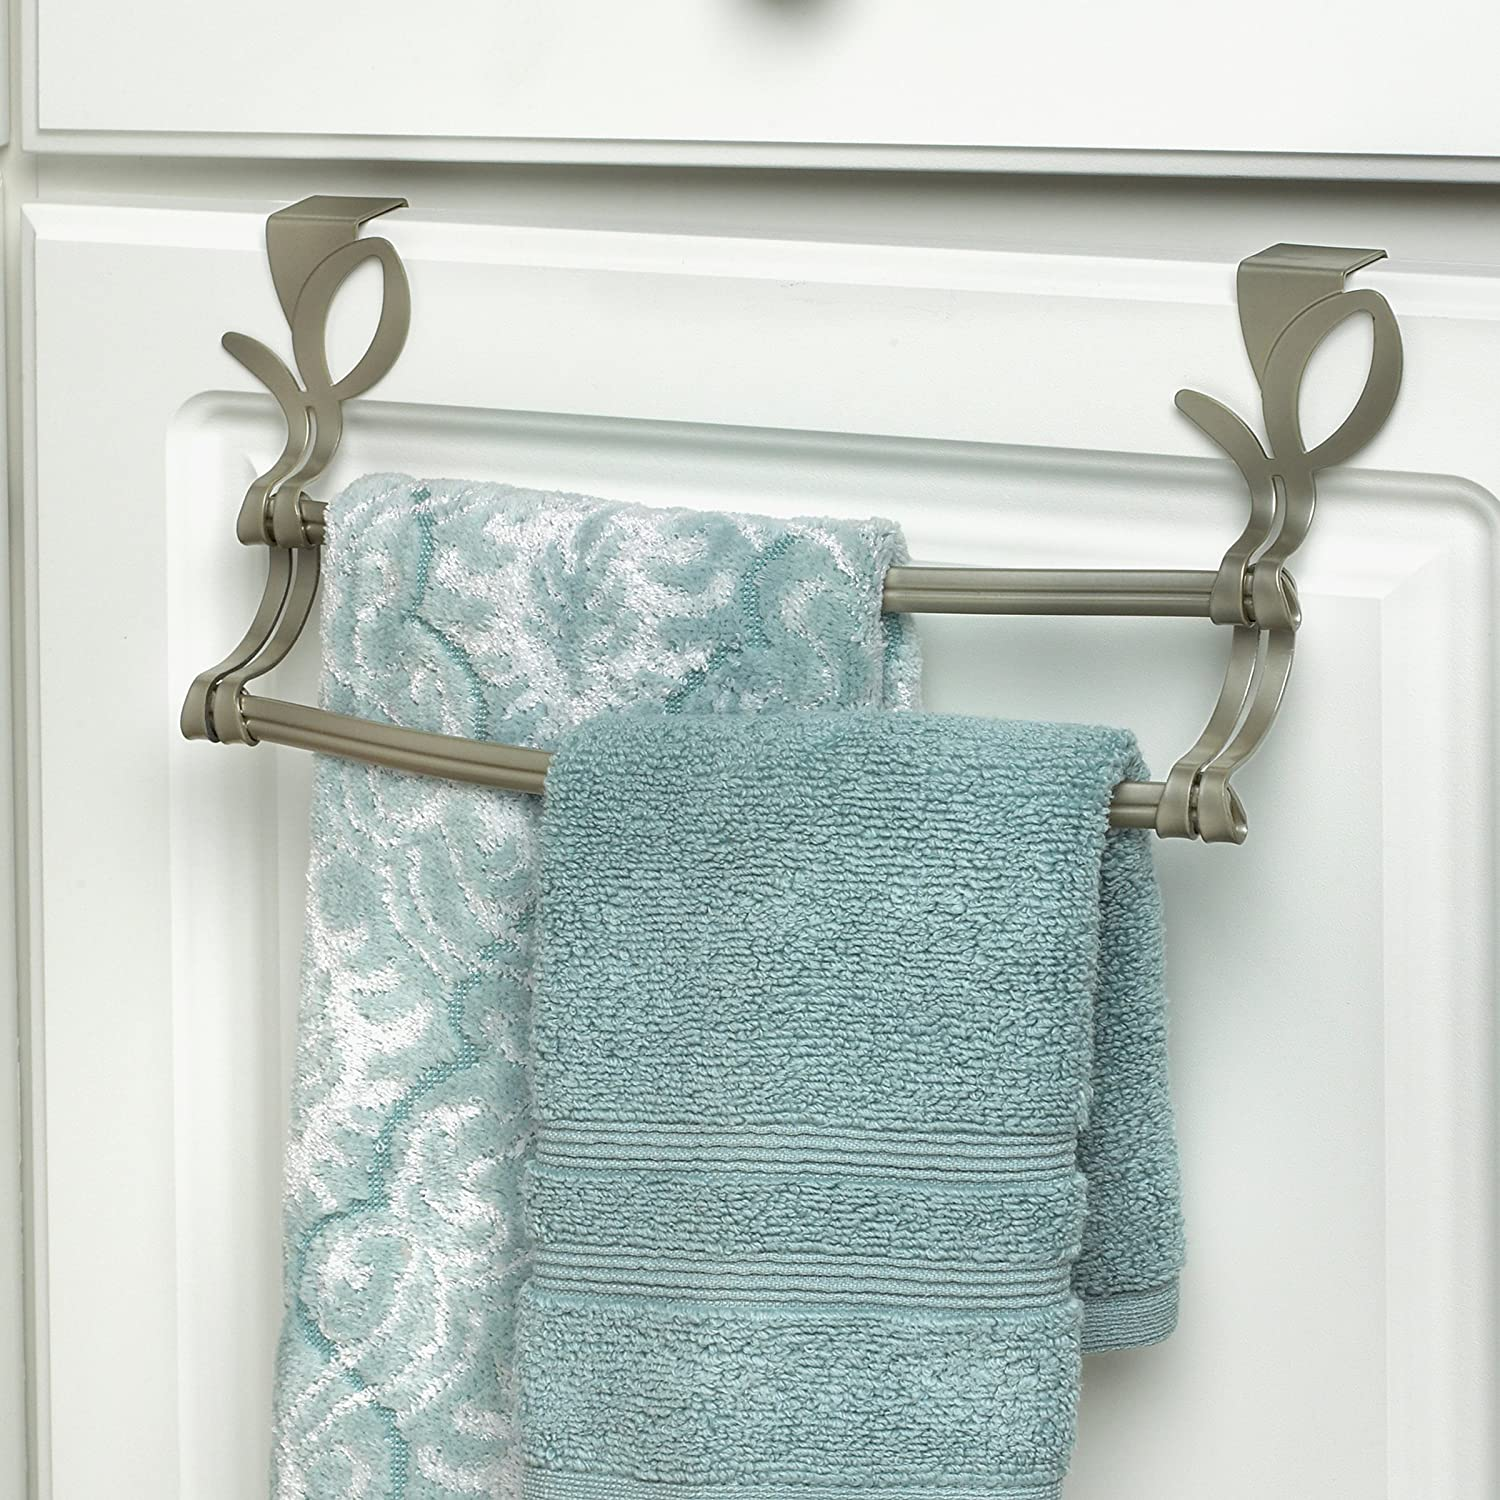 Amazon.com: Spectrum Diversified Leaf Double Towel Bar, Over the ...